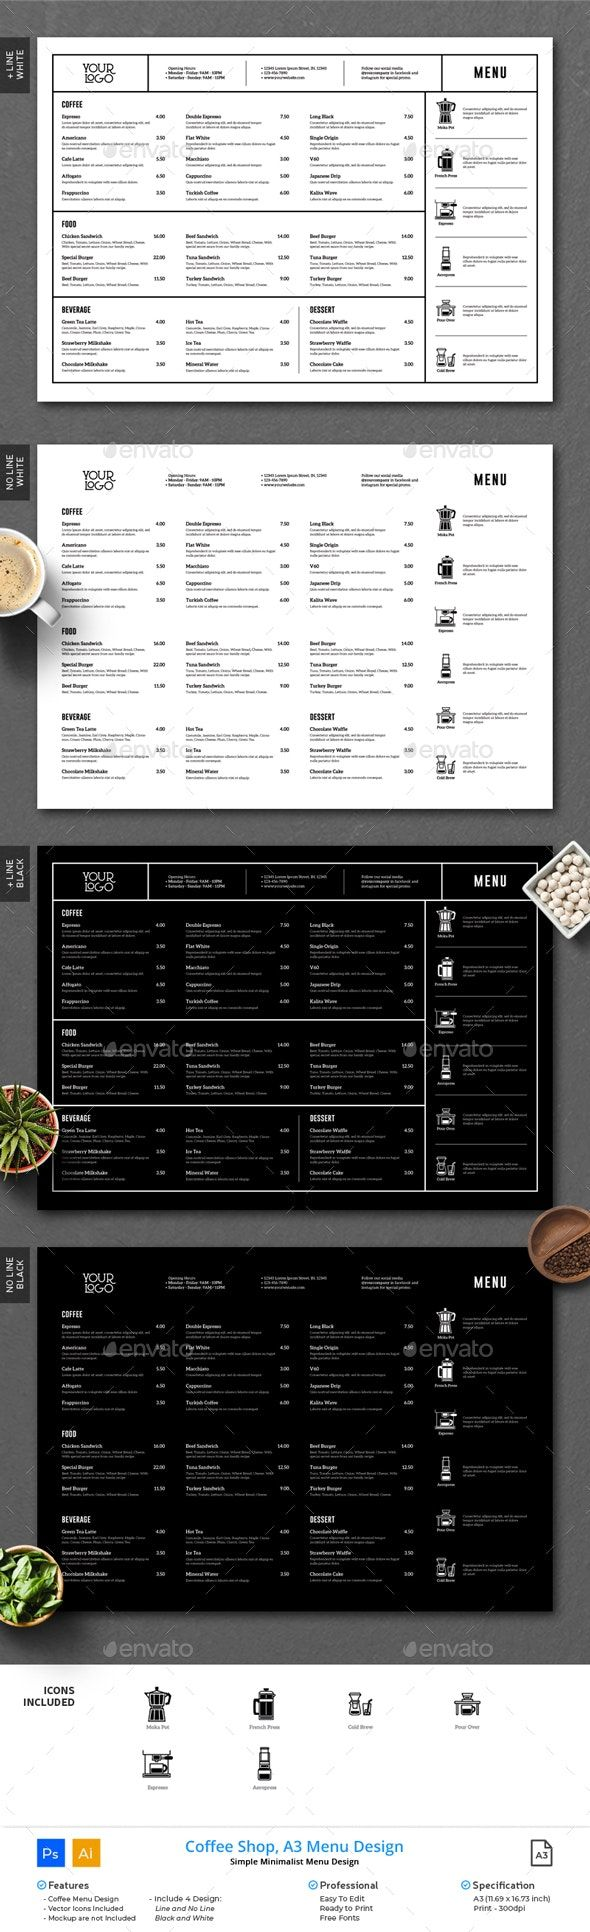 Coffee Minimalist Menu Clean A3 Menu Design Menu Design Layout Restaurant Menu Design